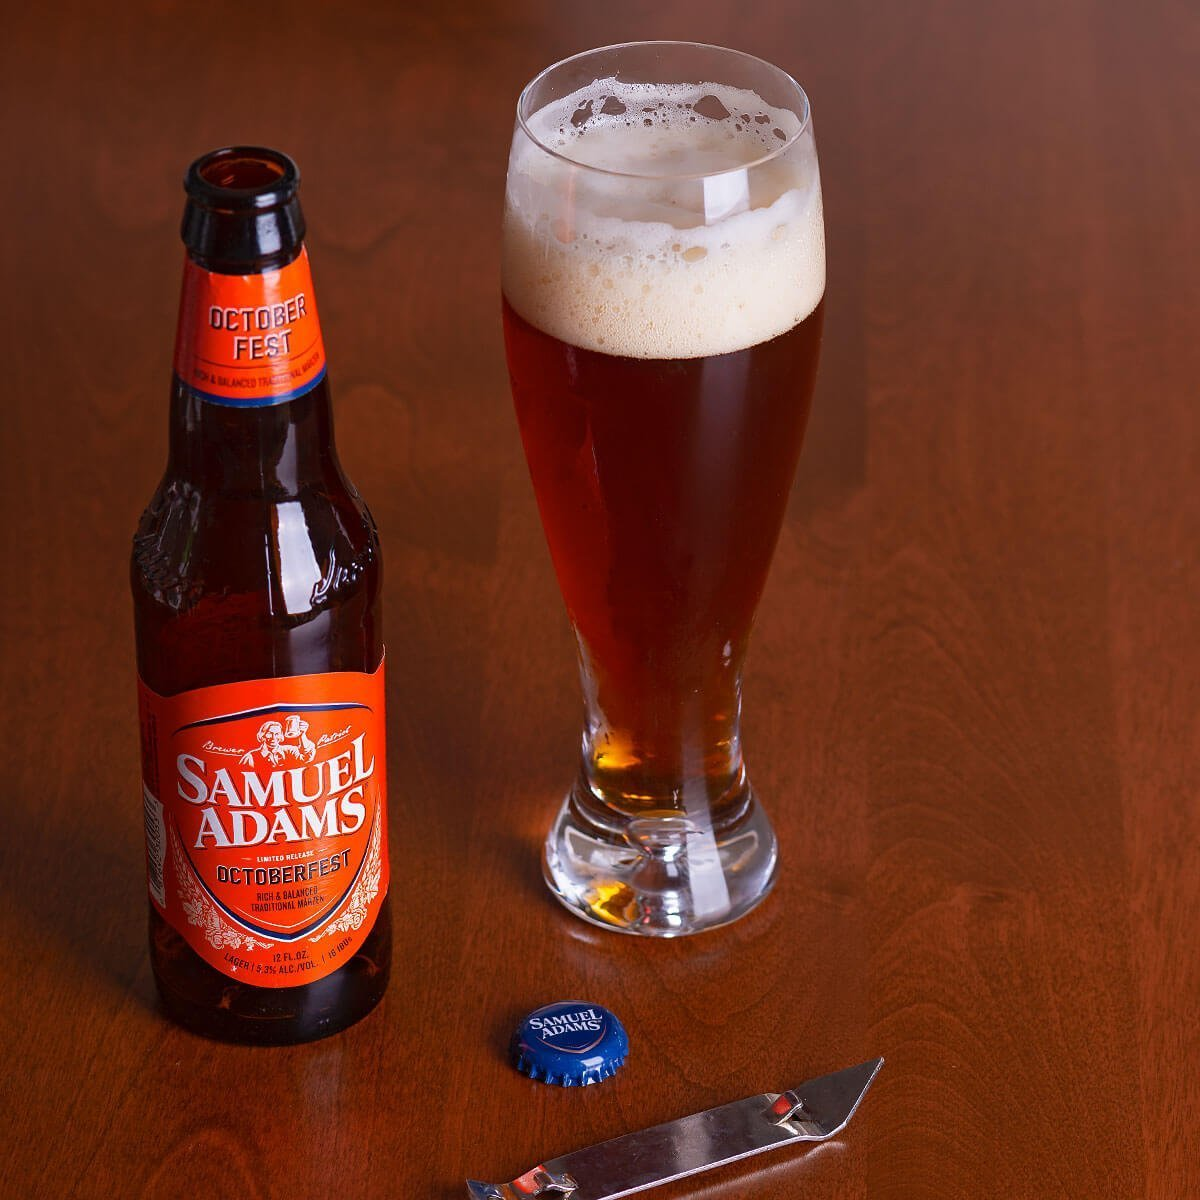 Samuel Adams OctoberFest is a German-style Märzen by the Boston Beer Company that blends caramel, noble hops, and subtle roast.